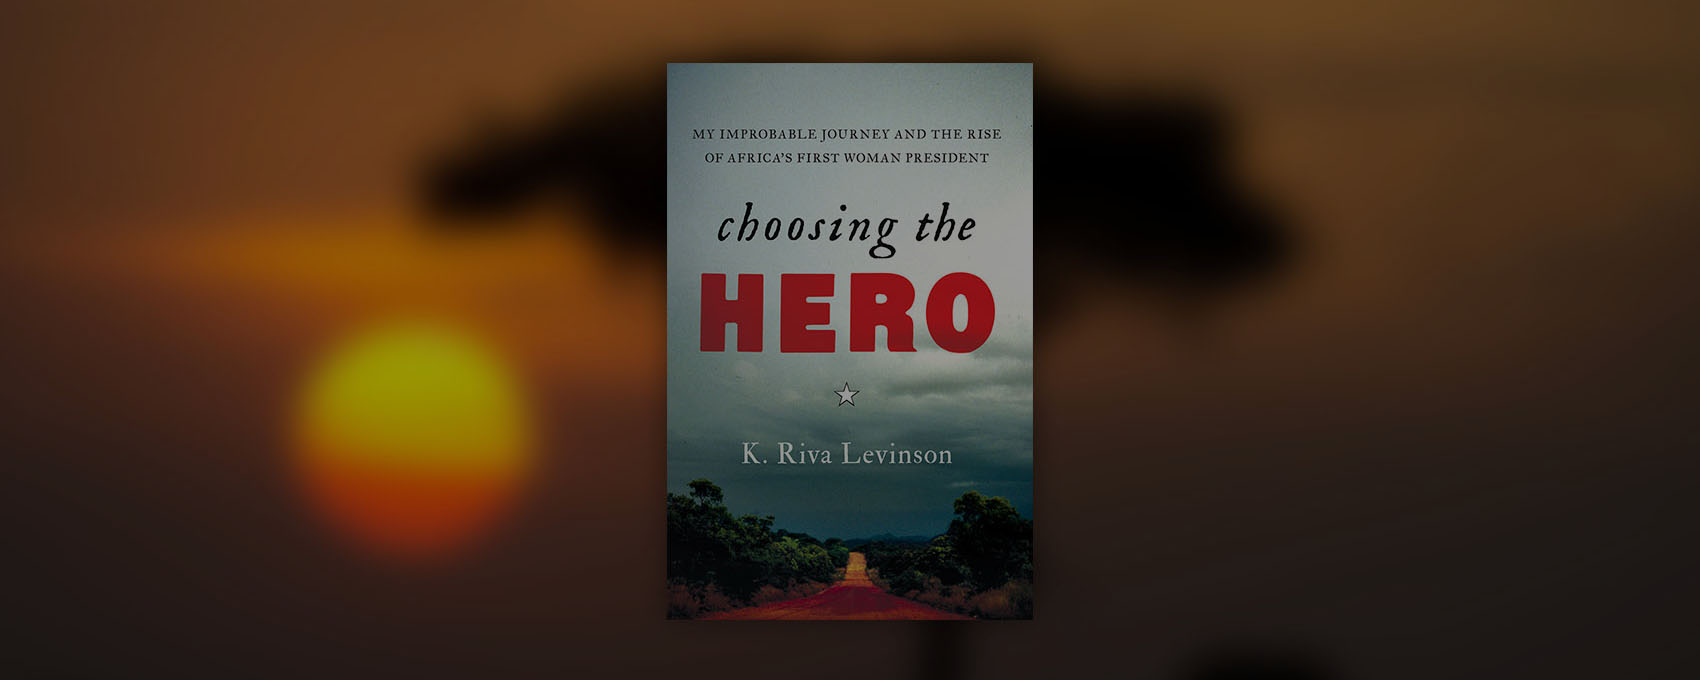 """Moneymailme has launched its first collaborative title """"Choosing the Hero"""", a memoir about the rise of Africa's first woman president"""